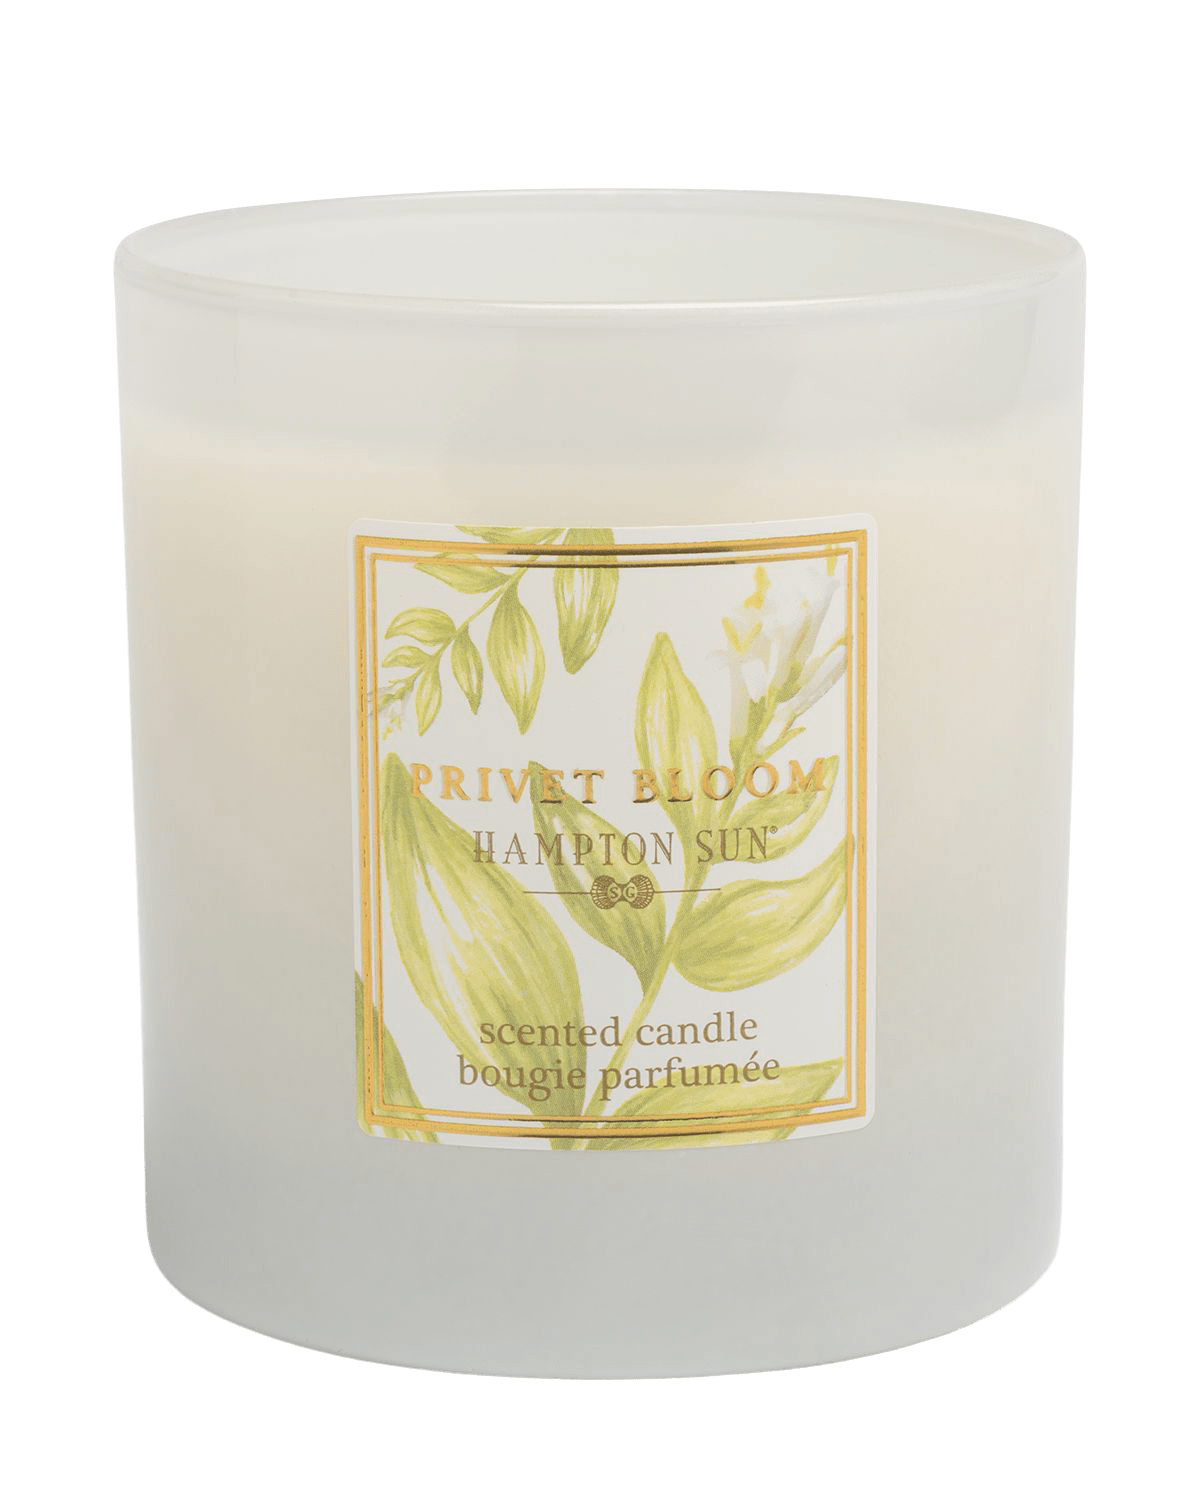 Privet Bloom Scented Candle